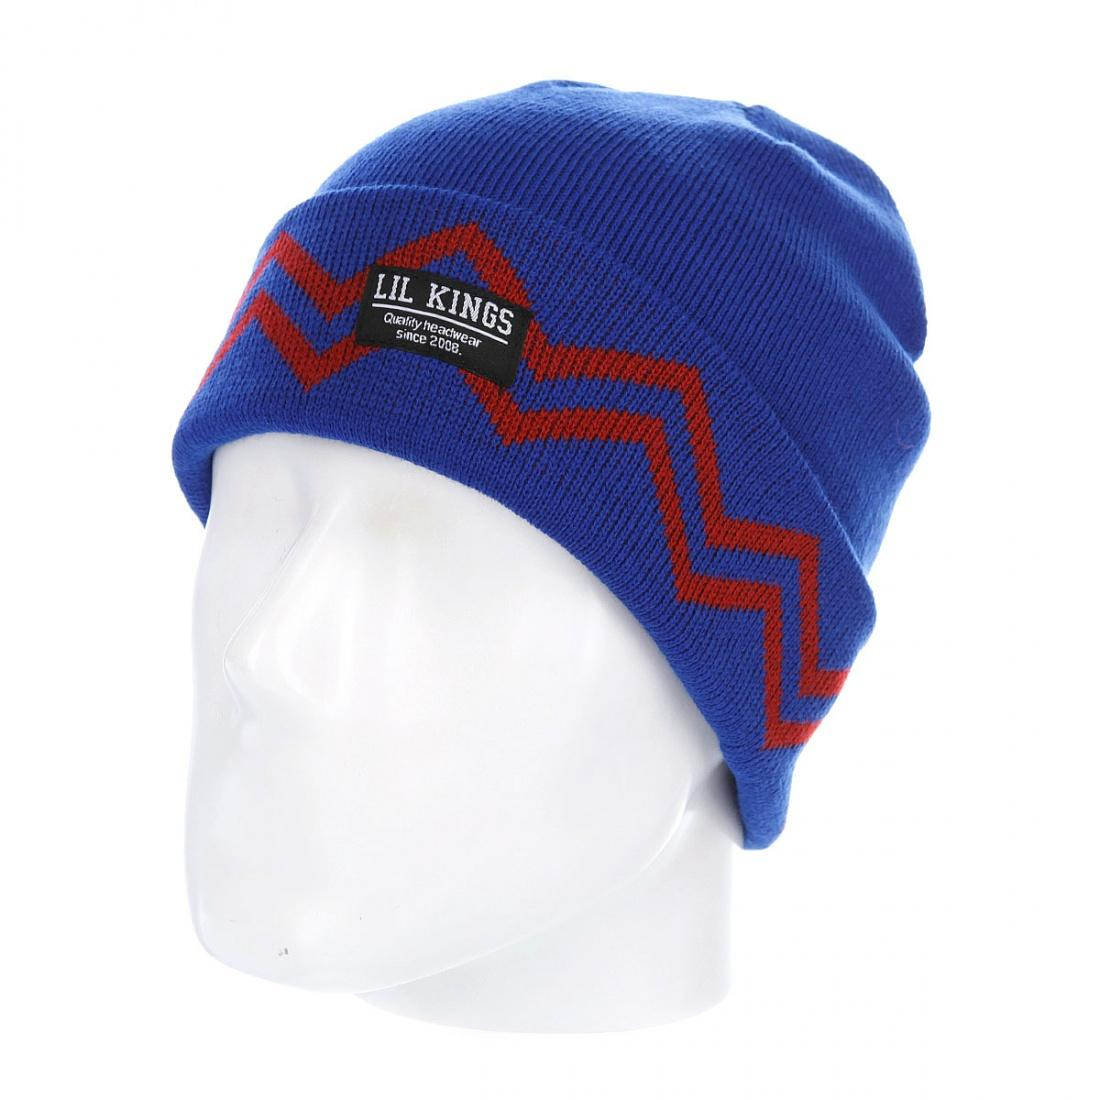 Шапка Lil kings Lil kings Truerap Blue Red от Boardshop-1